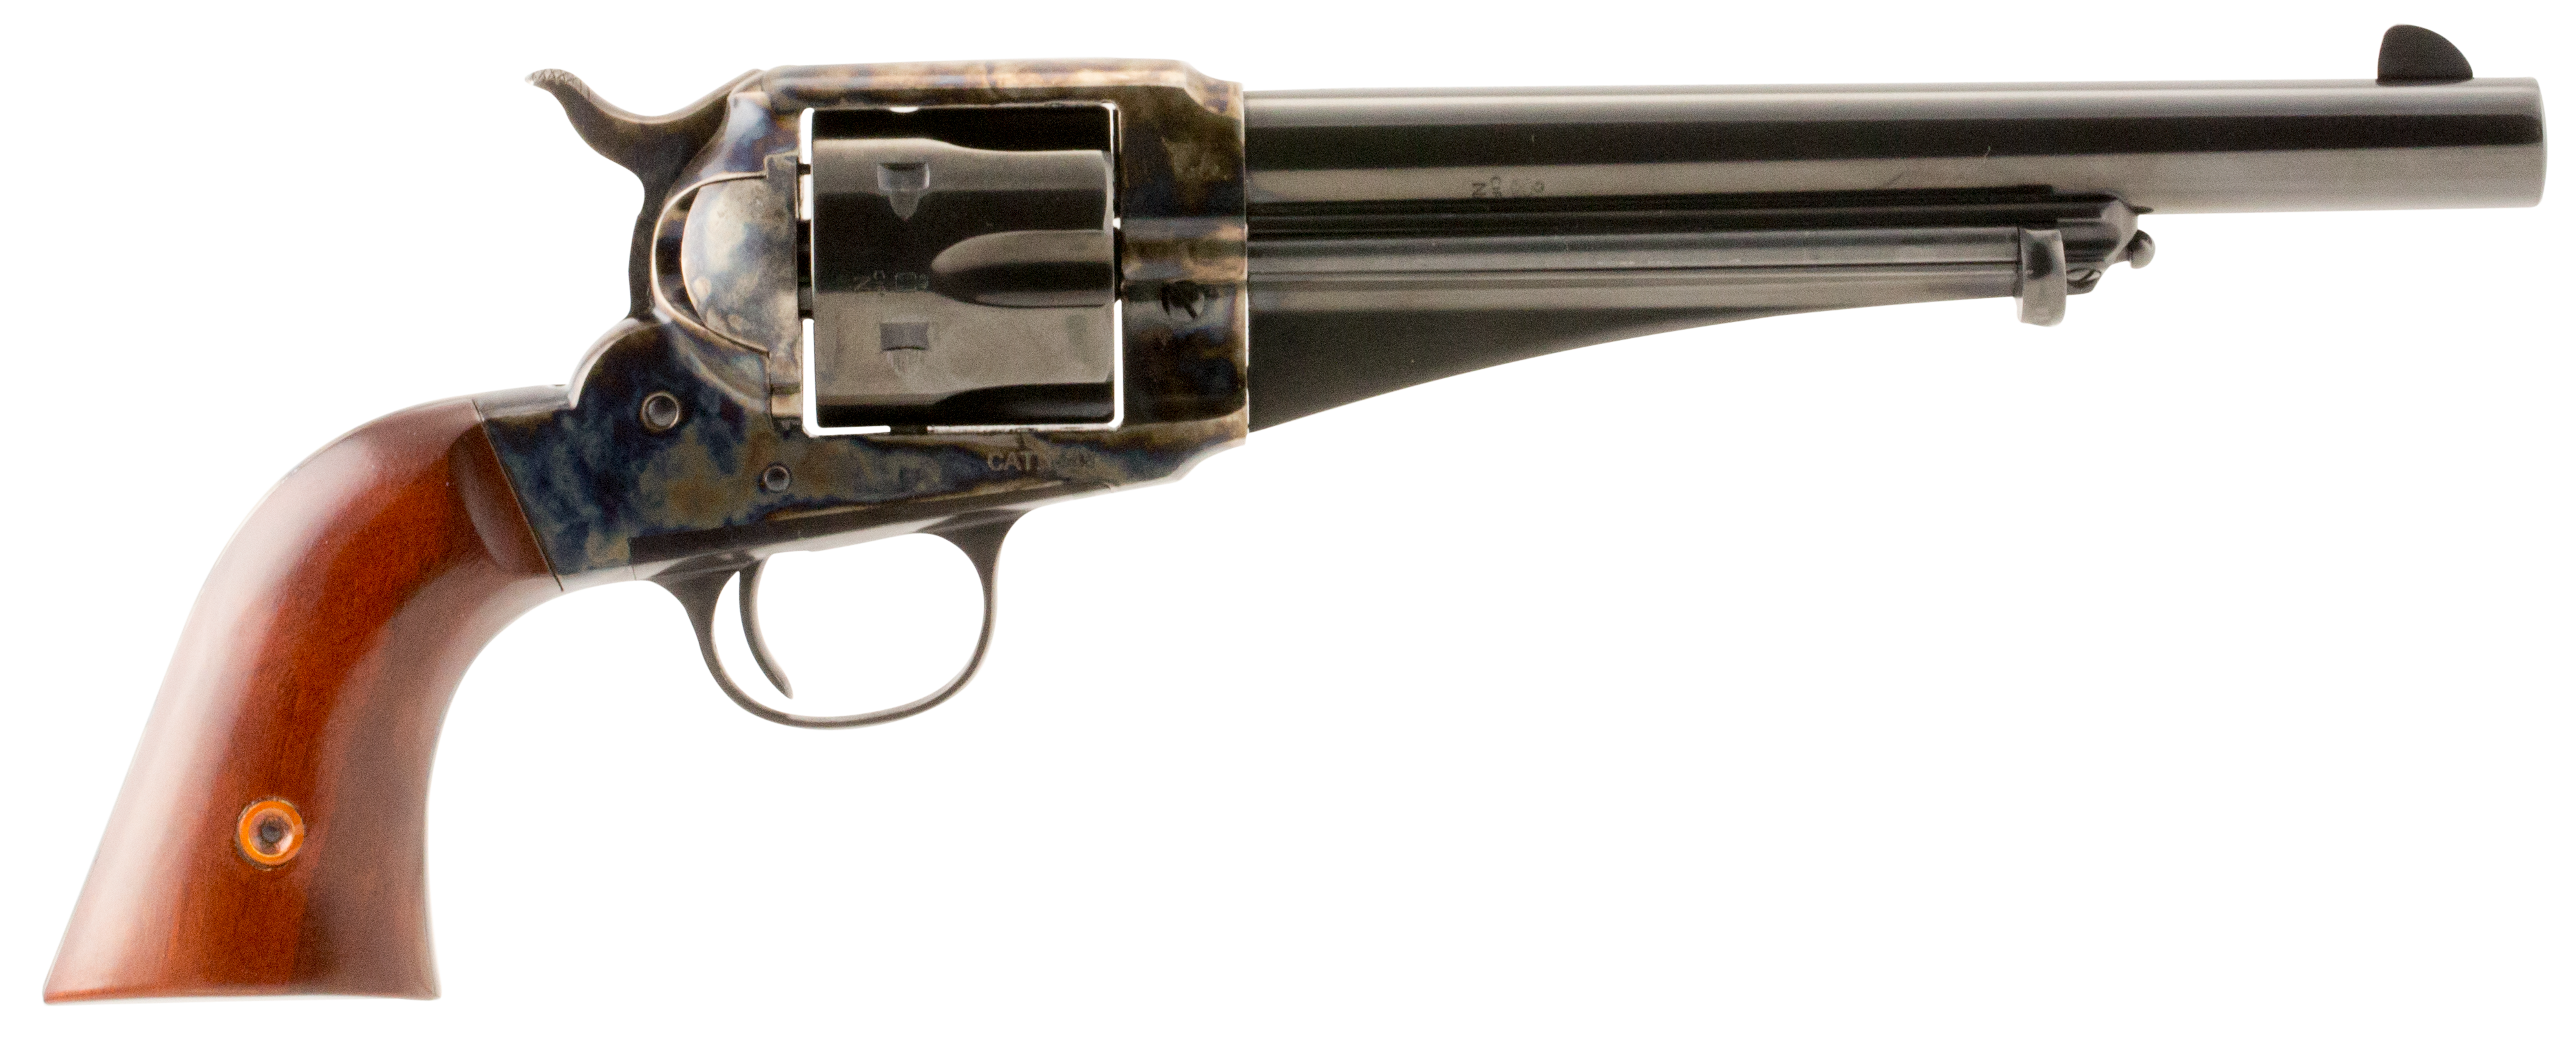 Taylors and Company 0150 1875 Army Outlaw Single 357 Magnum 7.5